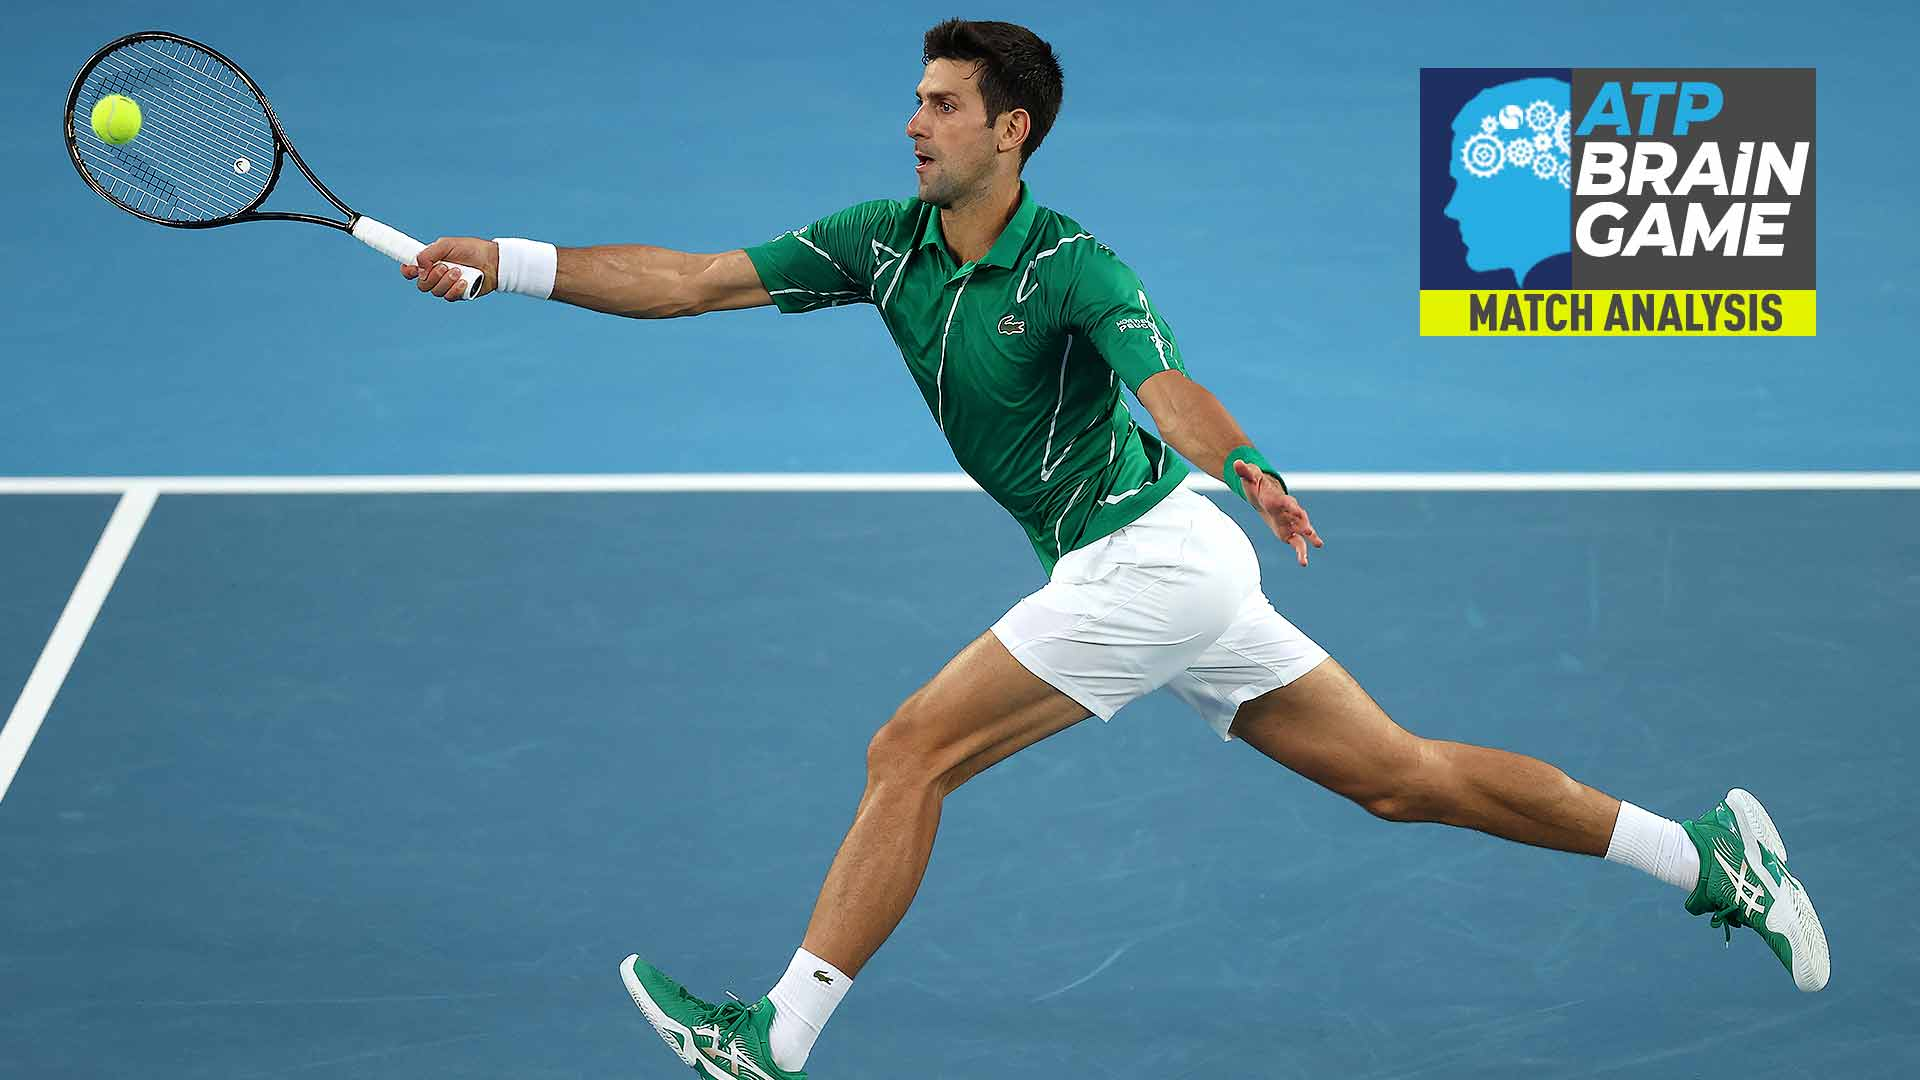 Novak Djokovic served and volleyed in key moments of the Australian Open final against Dominic Thiem.